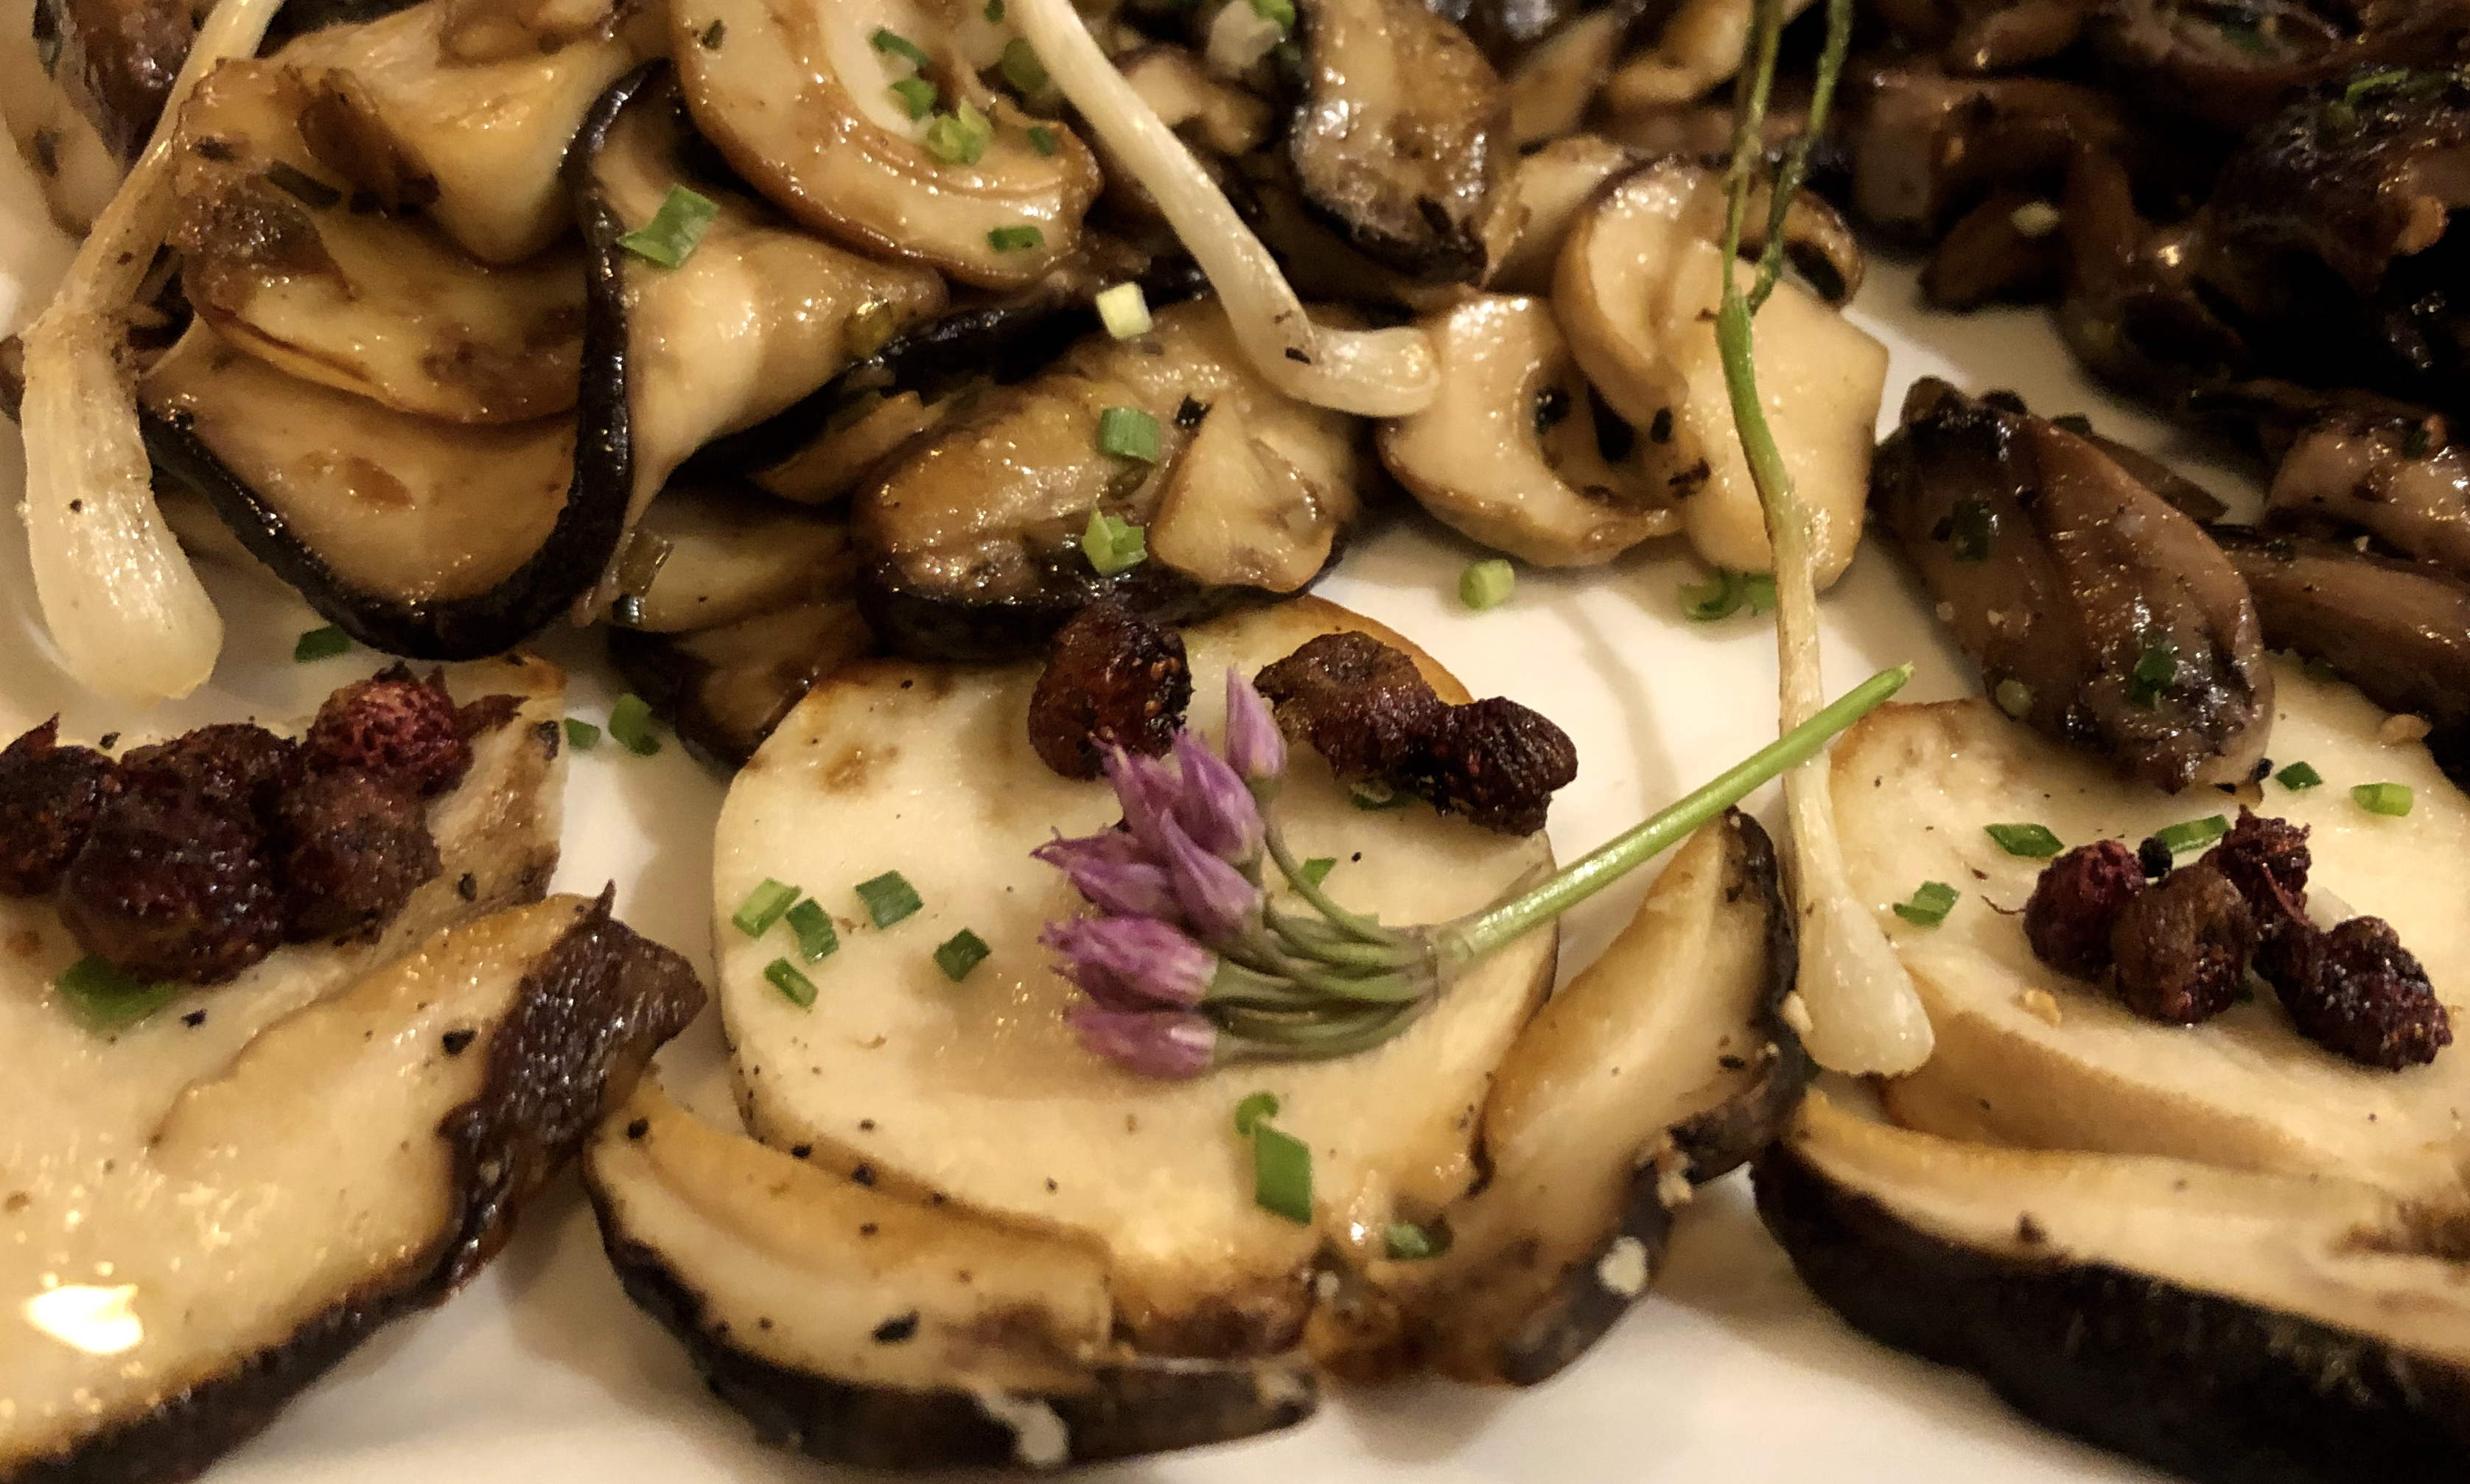 Chef Jose Zamora at The West End Bistro prepares our foraged mushrooms with a small amount of EVOO